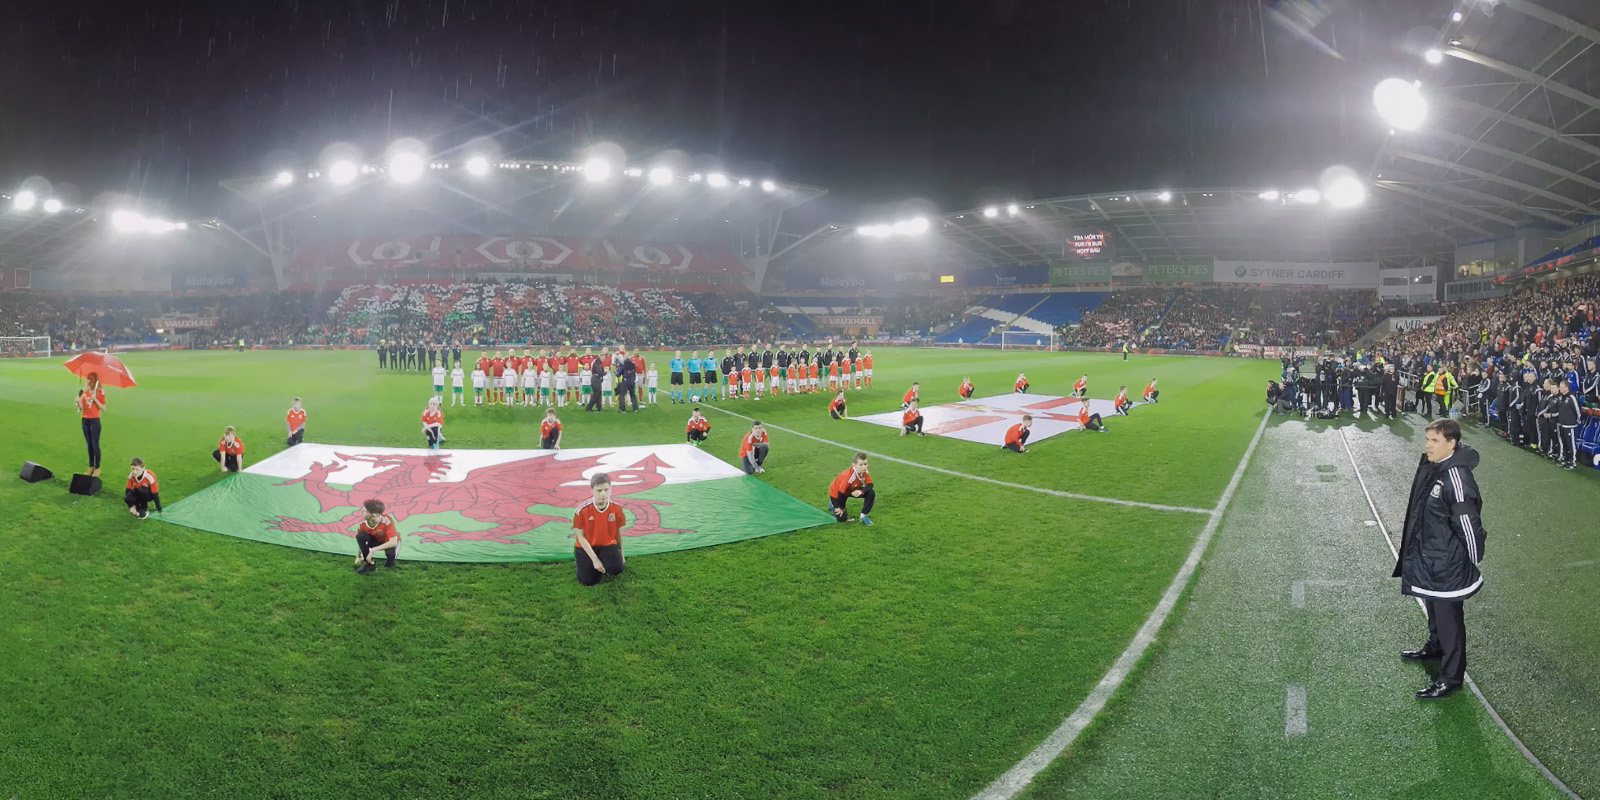 360 video footage of Wales Football Team at Cardiff City Stadium